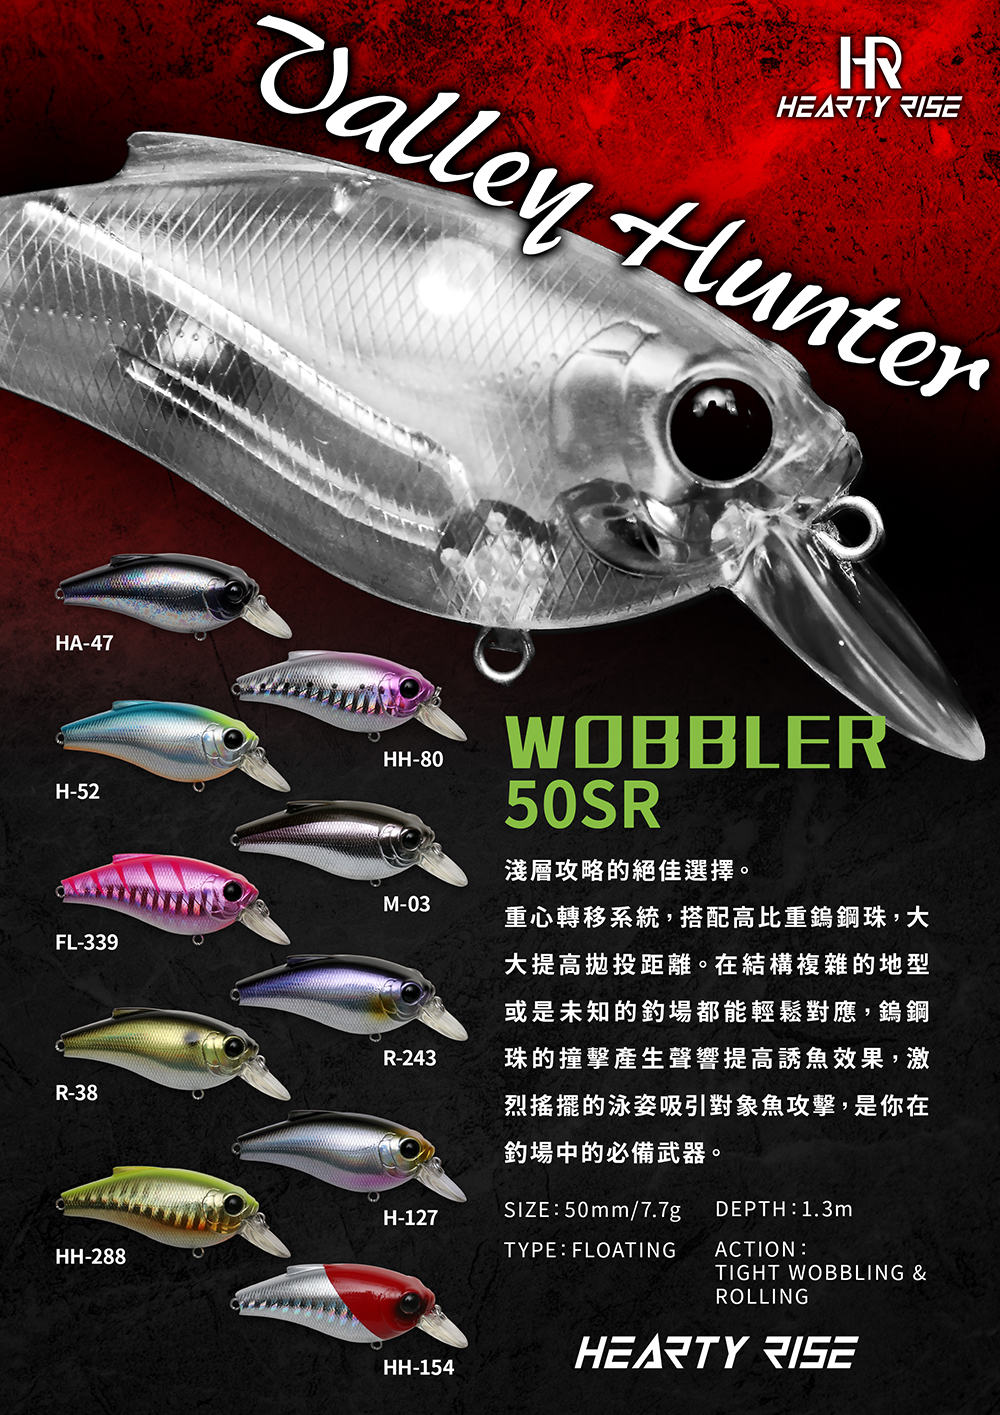 HR VALLEY HUNTER 溪谷獵人 Wobbler 50SR 1000